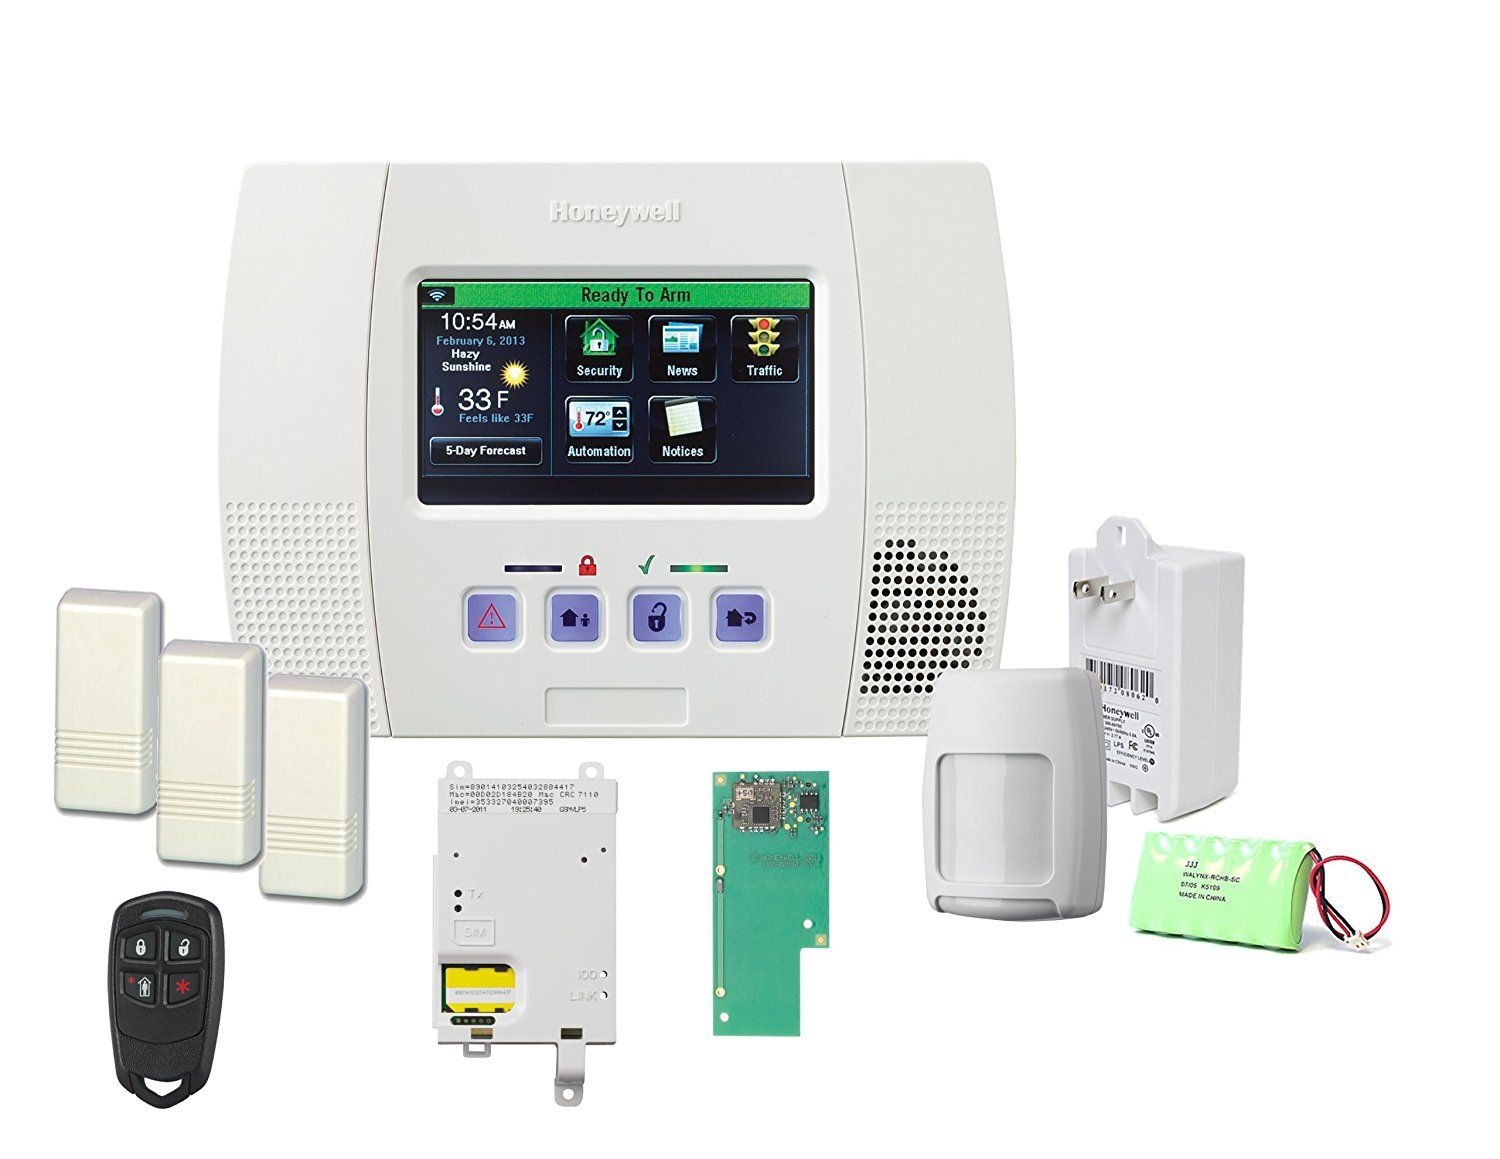 Honeywell lynx touch 5100 wireless alarm gsmvlp5 4g and zwave home honeywells lynx touch features a bright full color touchscreen with graphic icons and intuitive prompts for easier operation advanced alarm solutioingenieria Image collections